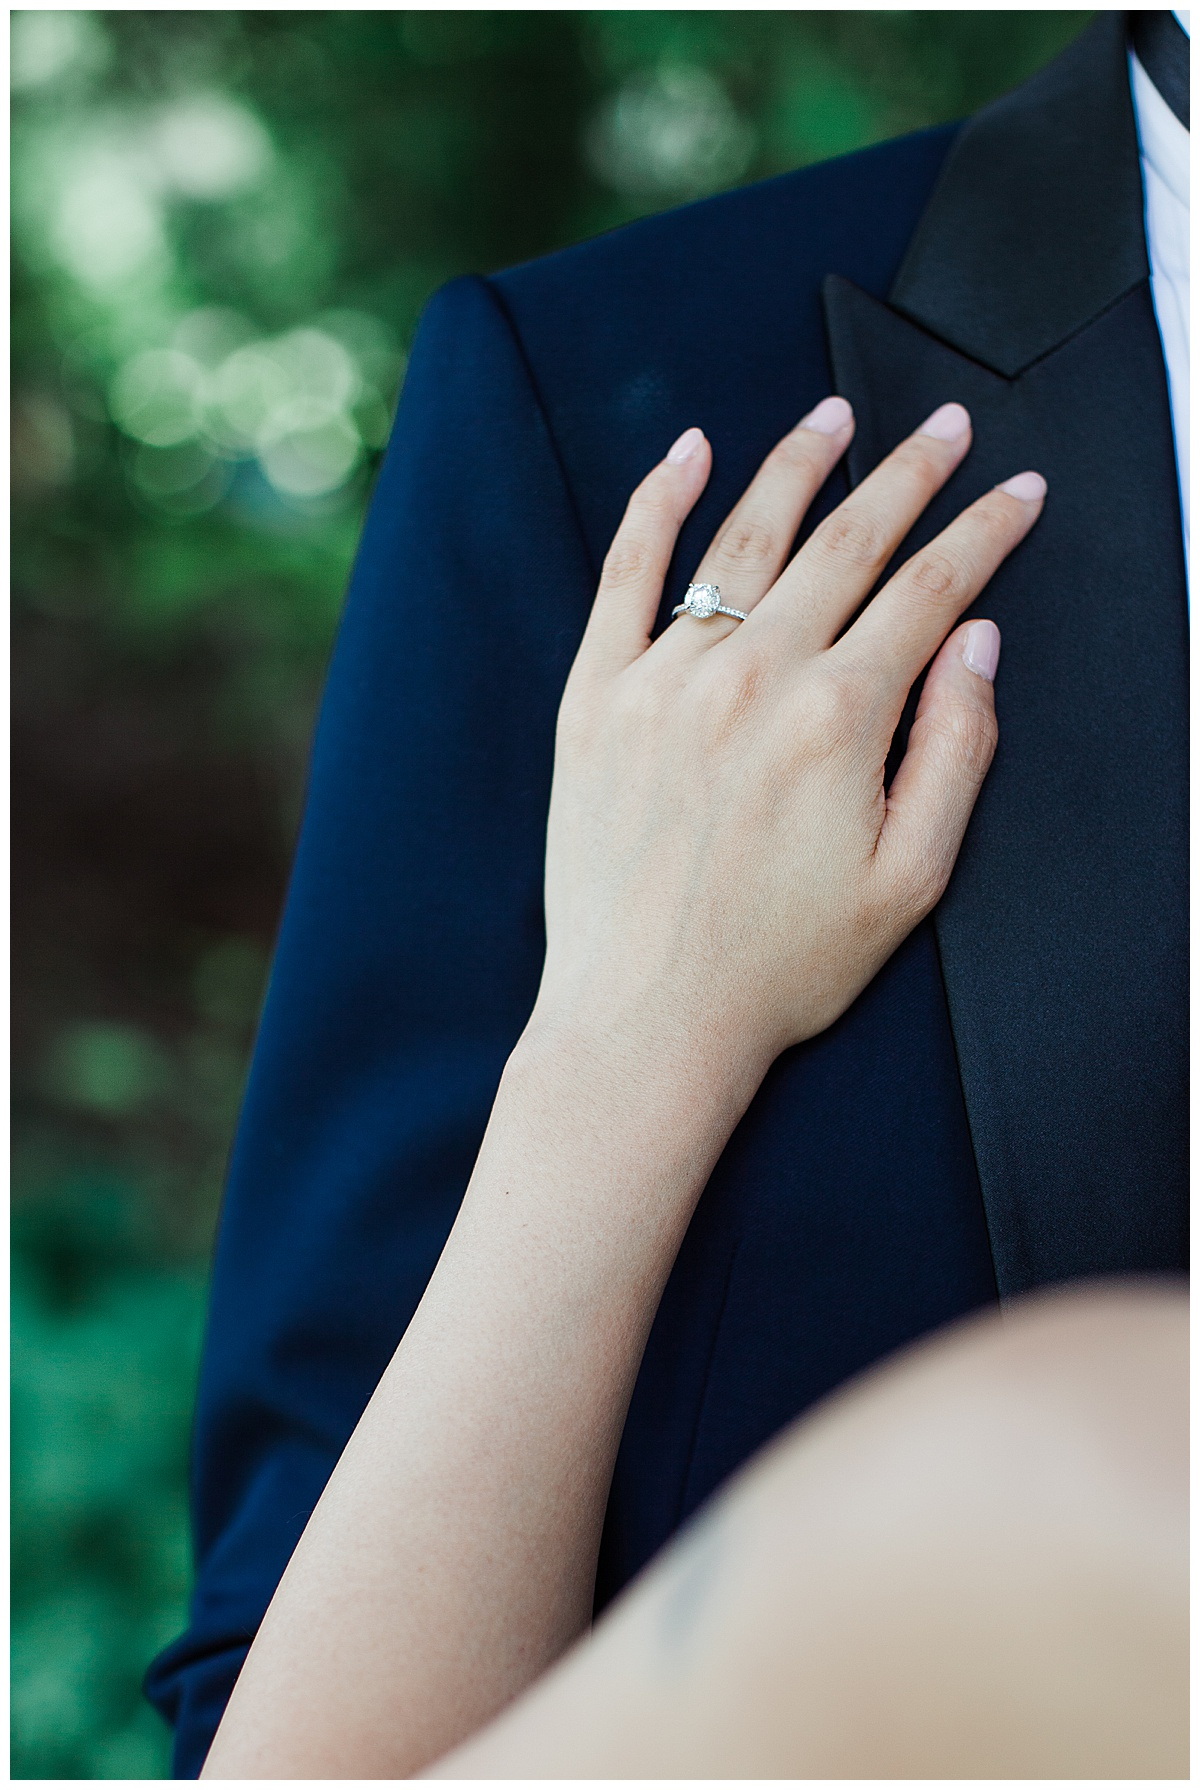 Bride's hand resting on groom's chest showing off her wedding ring| solitaire wedding ring| bride and groom portrait| winery wedding| Adamo Estate Winery wedding| Toronto photographer| 3photography